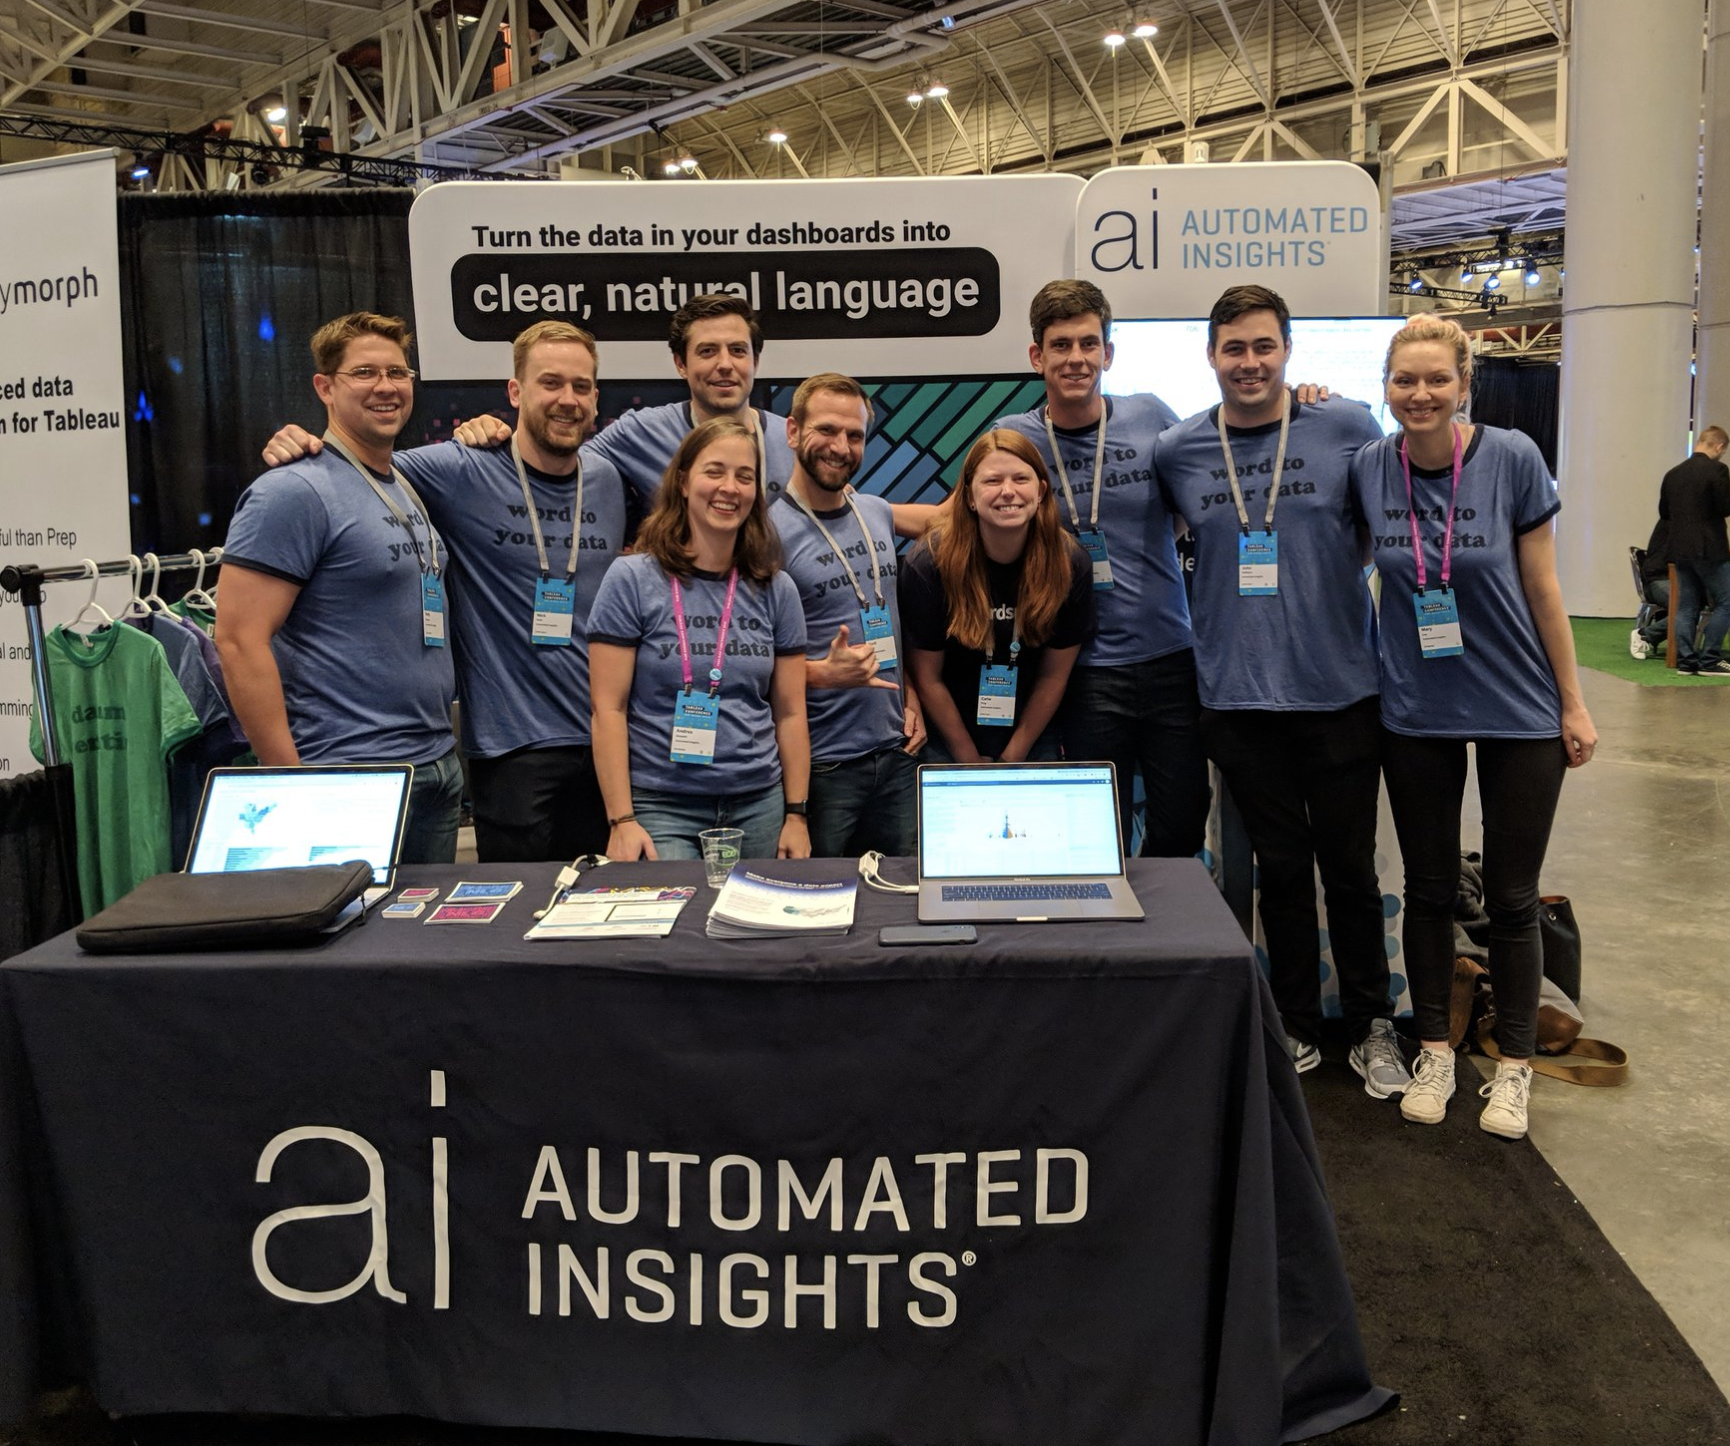 Top Takeaways from Tableau Conference 2018 | Automated Insights